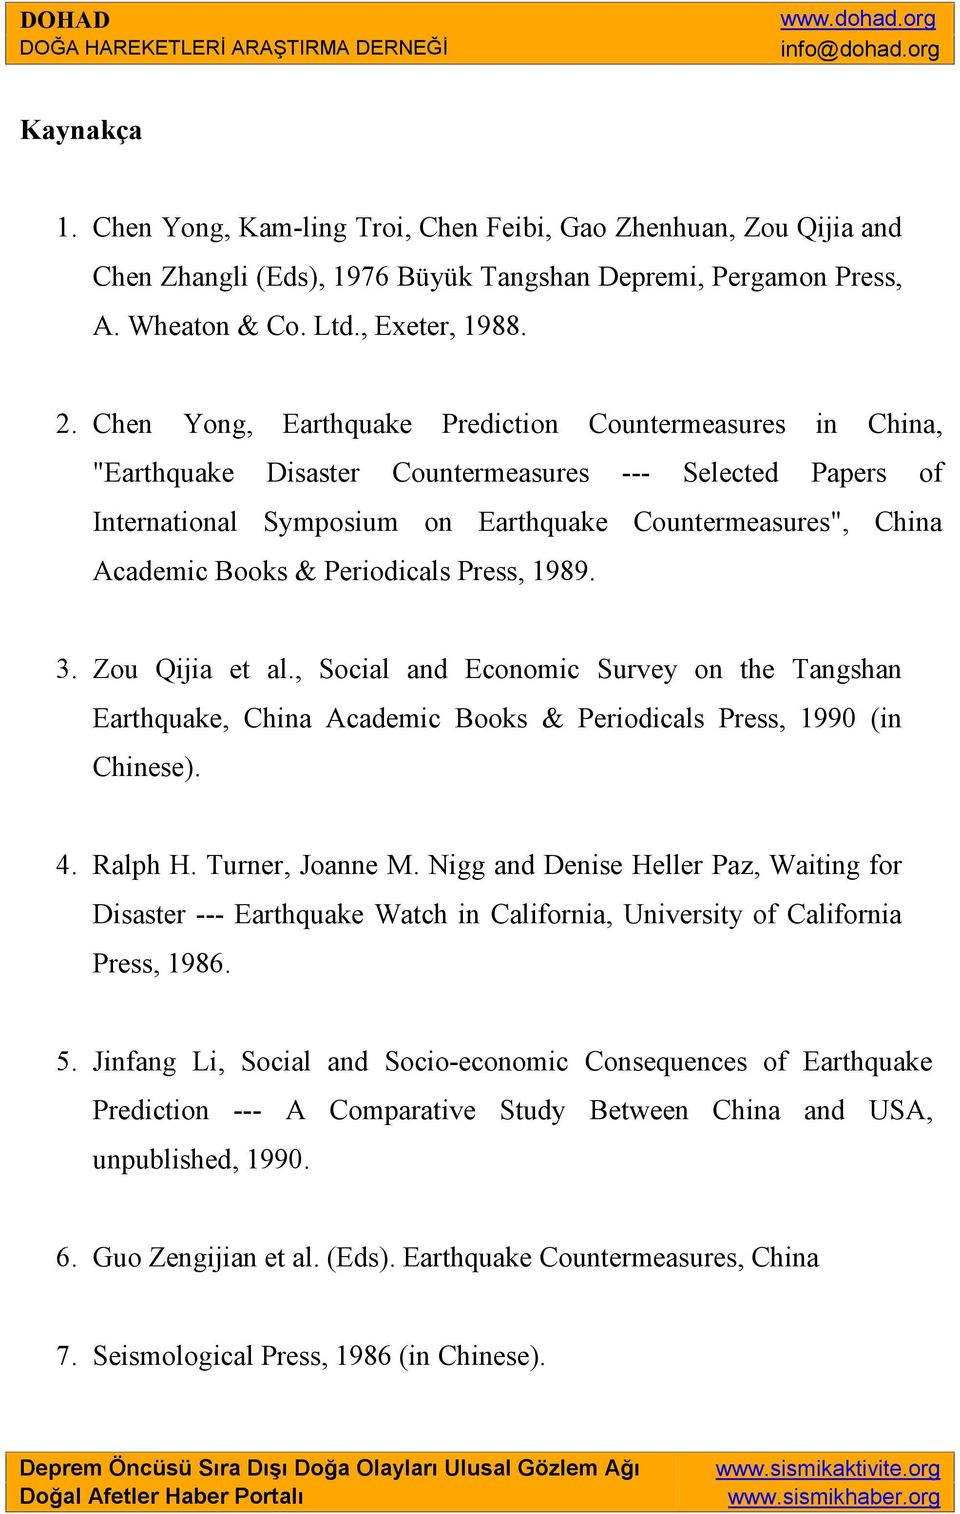 Periodicals Press, 1989. 3. Zou Qijia et al., Social and Economic Survey on the Tangshan Earthquake, China Academic Books & Periodicals Press, 1990 (in Chinese). 4. Ralph H. Turner, Joanne M.